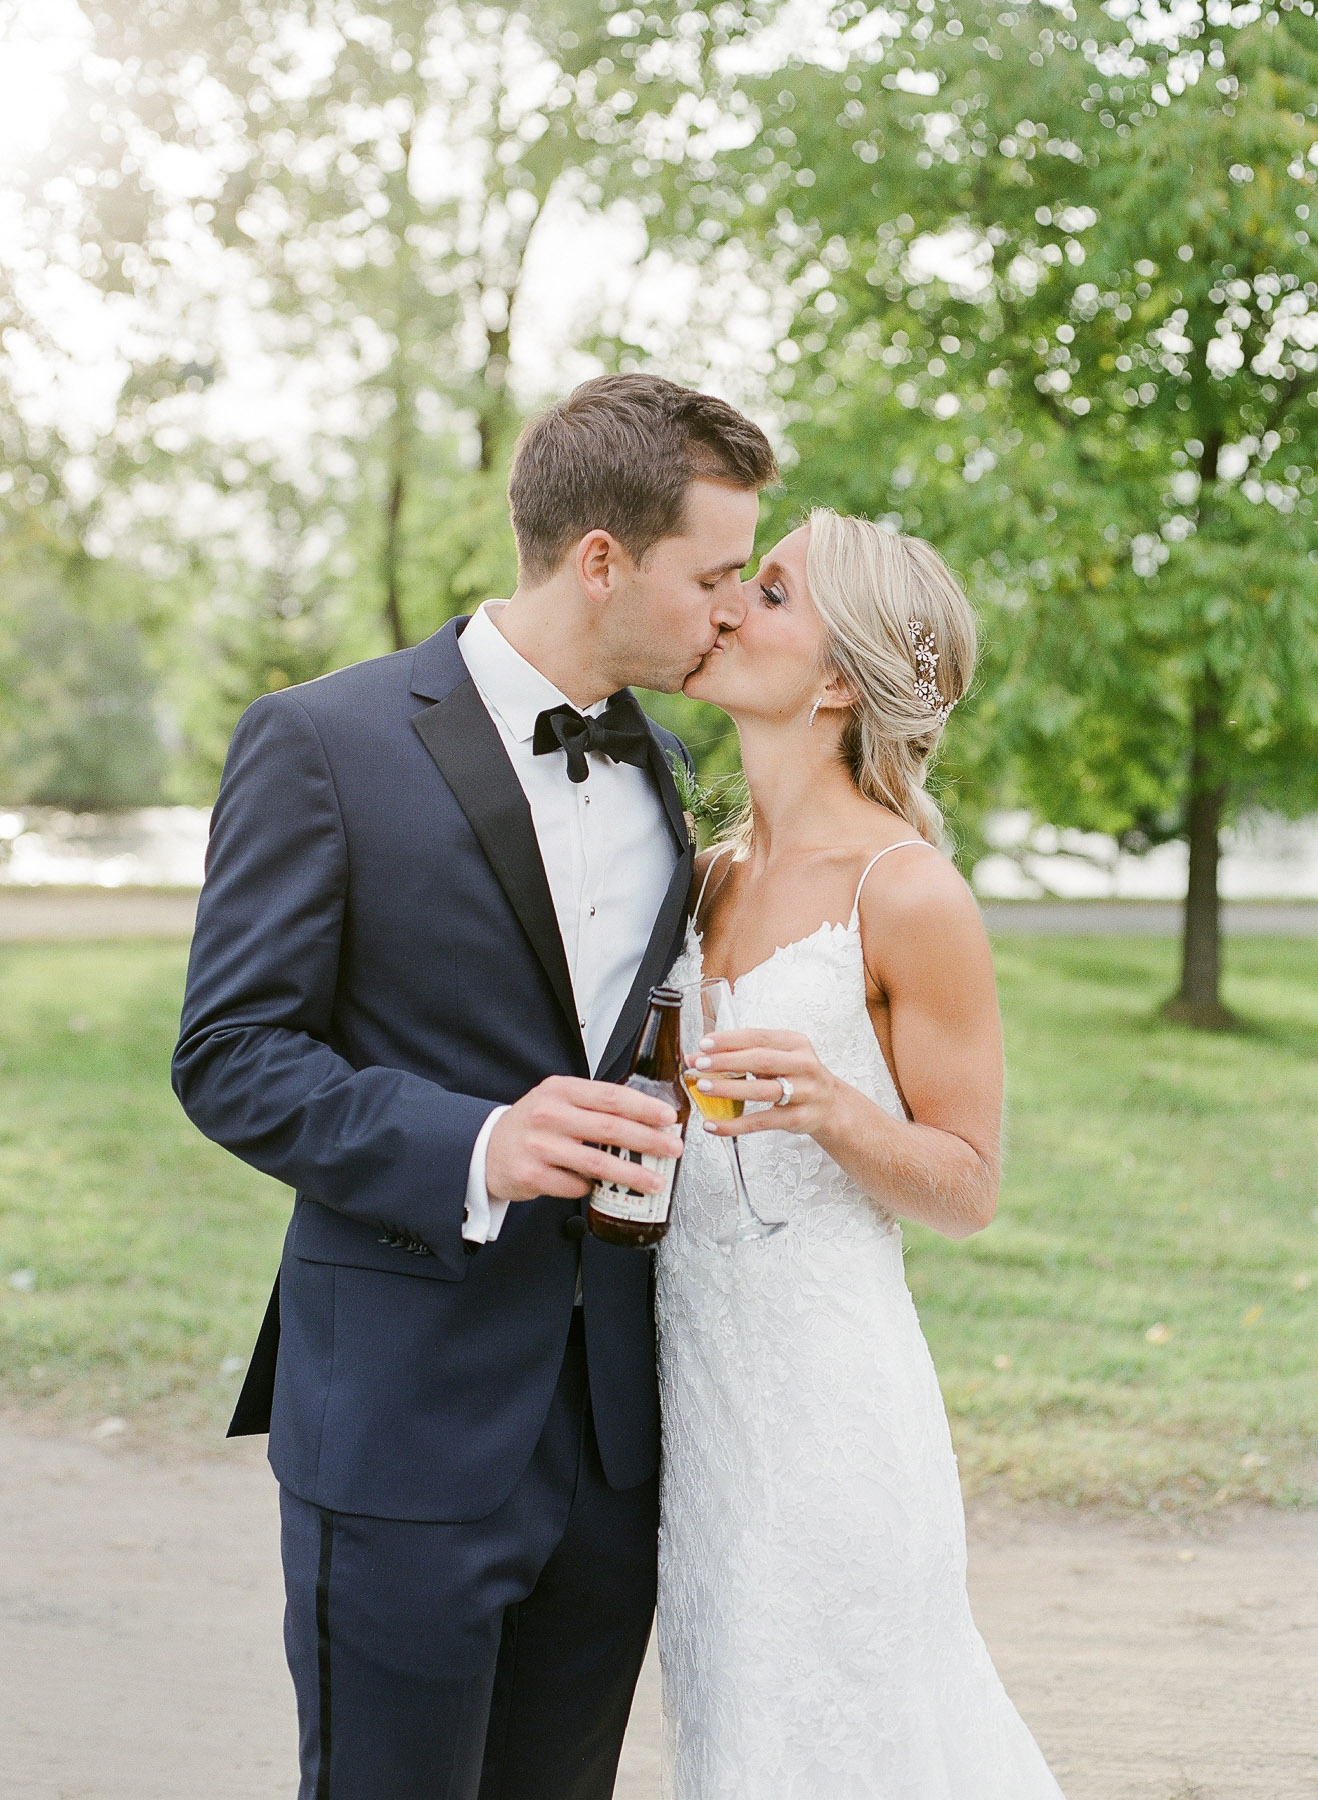 Private Island Upstate NY Wedding by Michelle Lange Photography-57.jpg